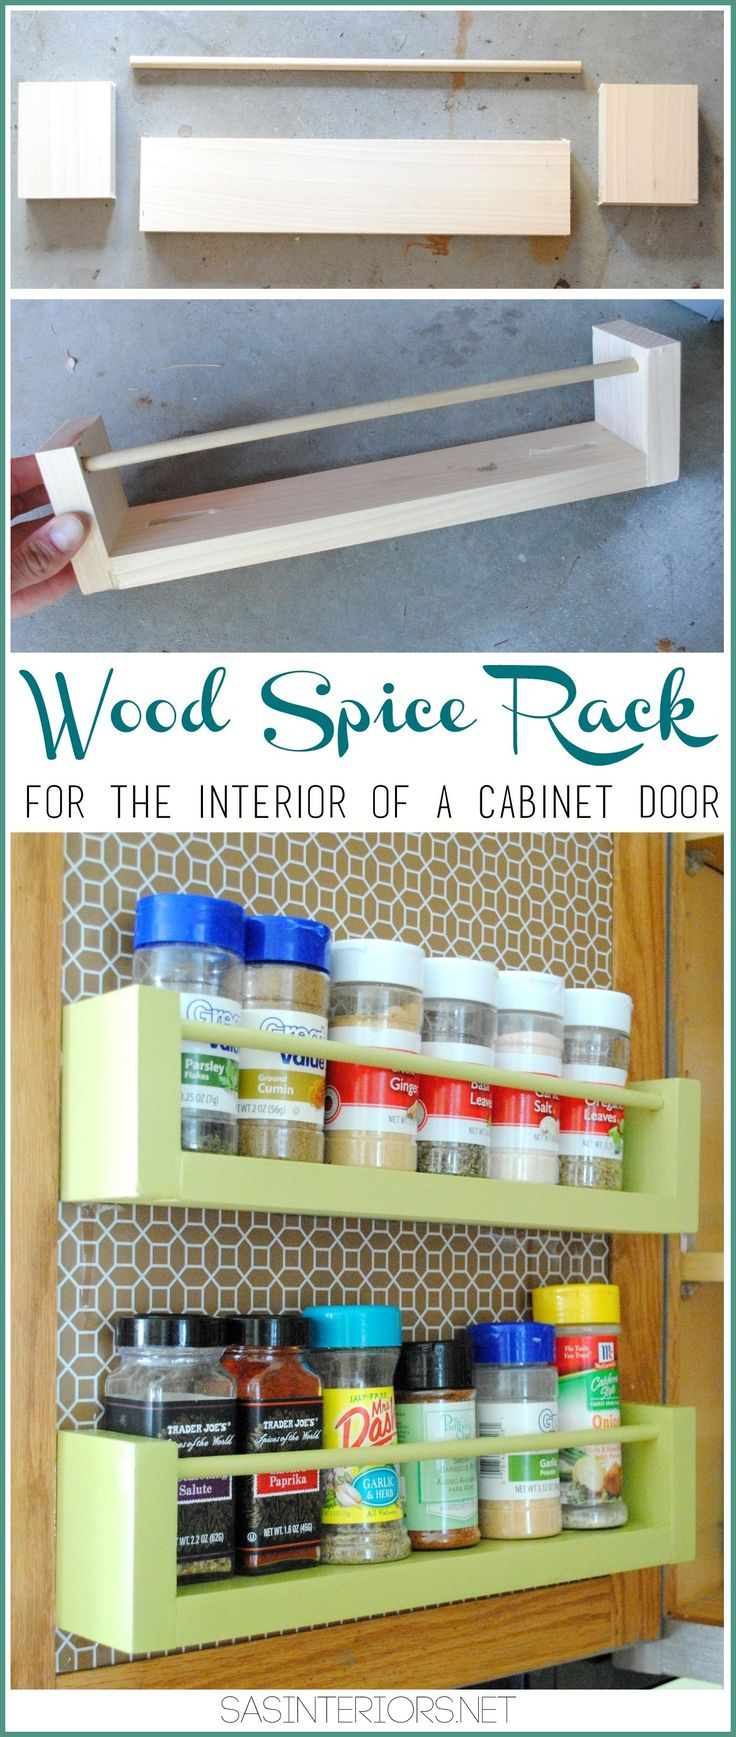 FREE plans and tutorial! Learn how to build a wooden spike rack! Easily attachable to the inside of any cabinet door!